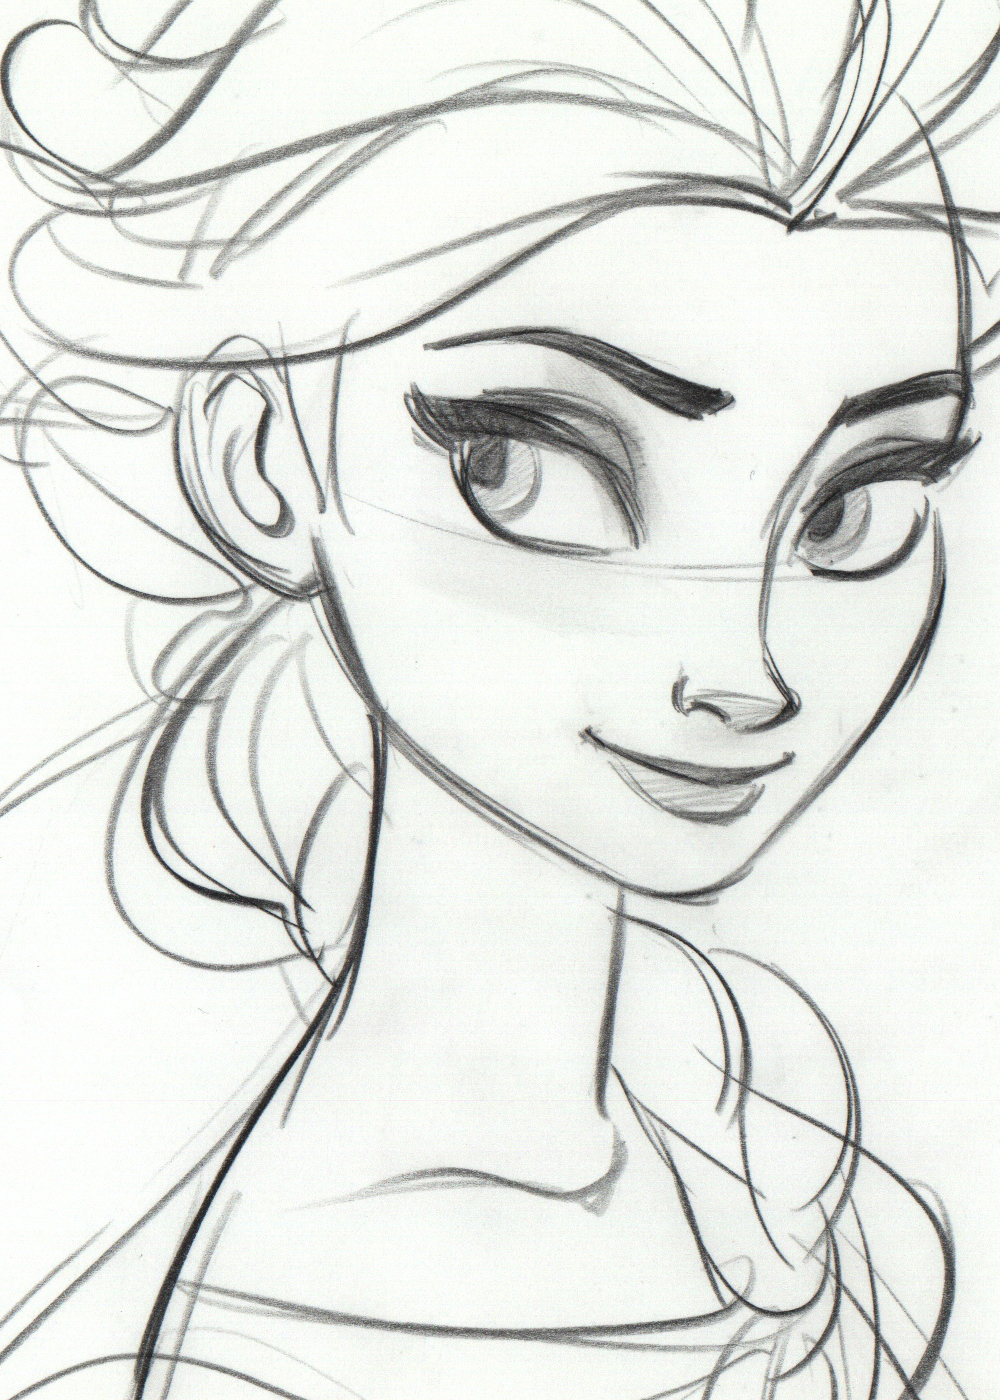 1000x1400 Pin By C Elmer On Disney Animator Drawings, Sketches